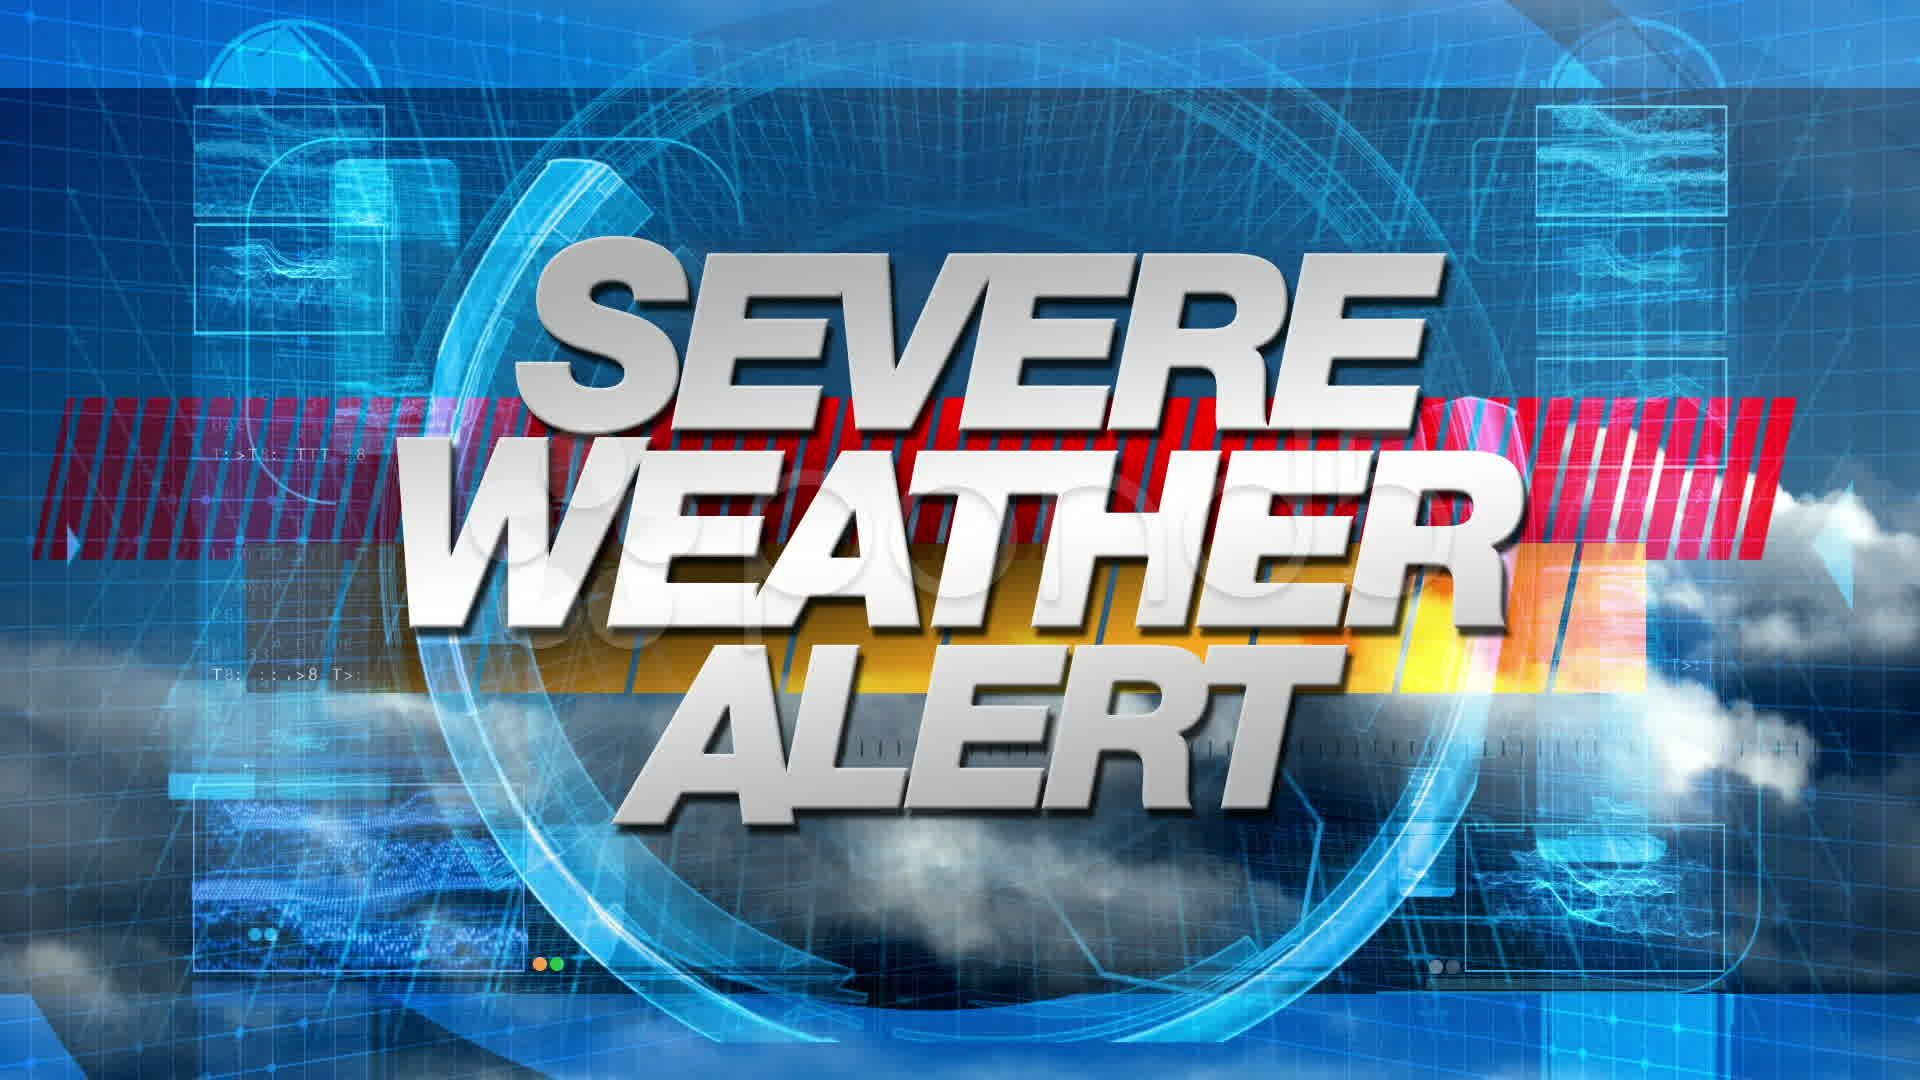 Severe Weather Alert - Broadcast Graphics Title Animation